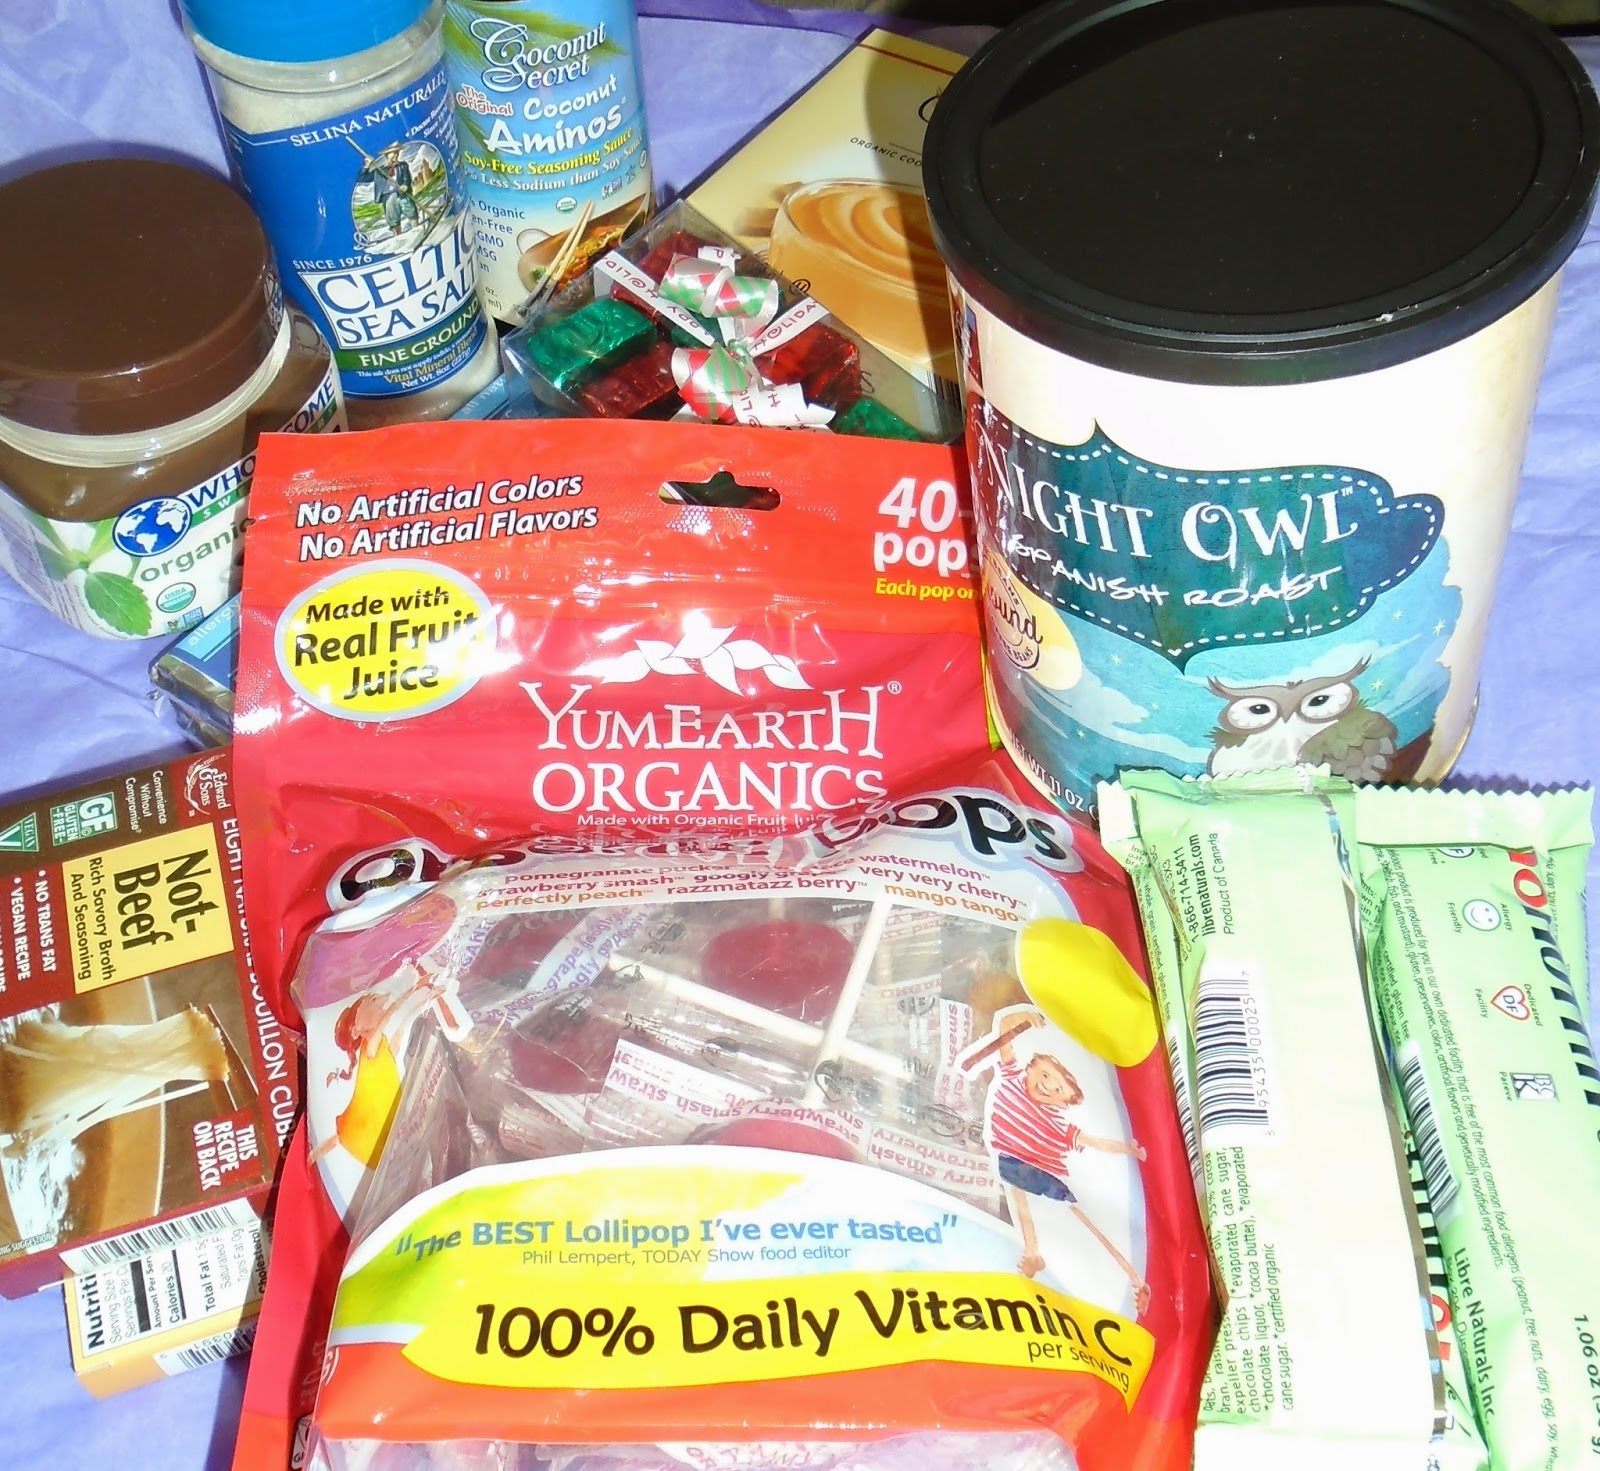 allergy friendly soy free products for Maya's Christmas Giveaway worth over $50